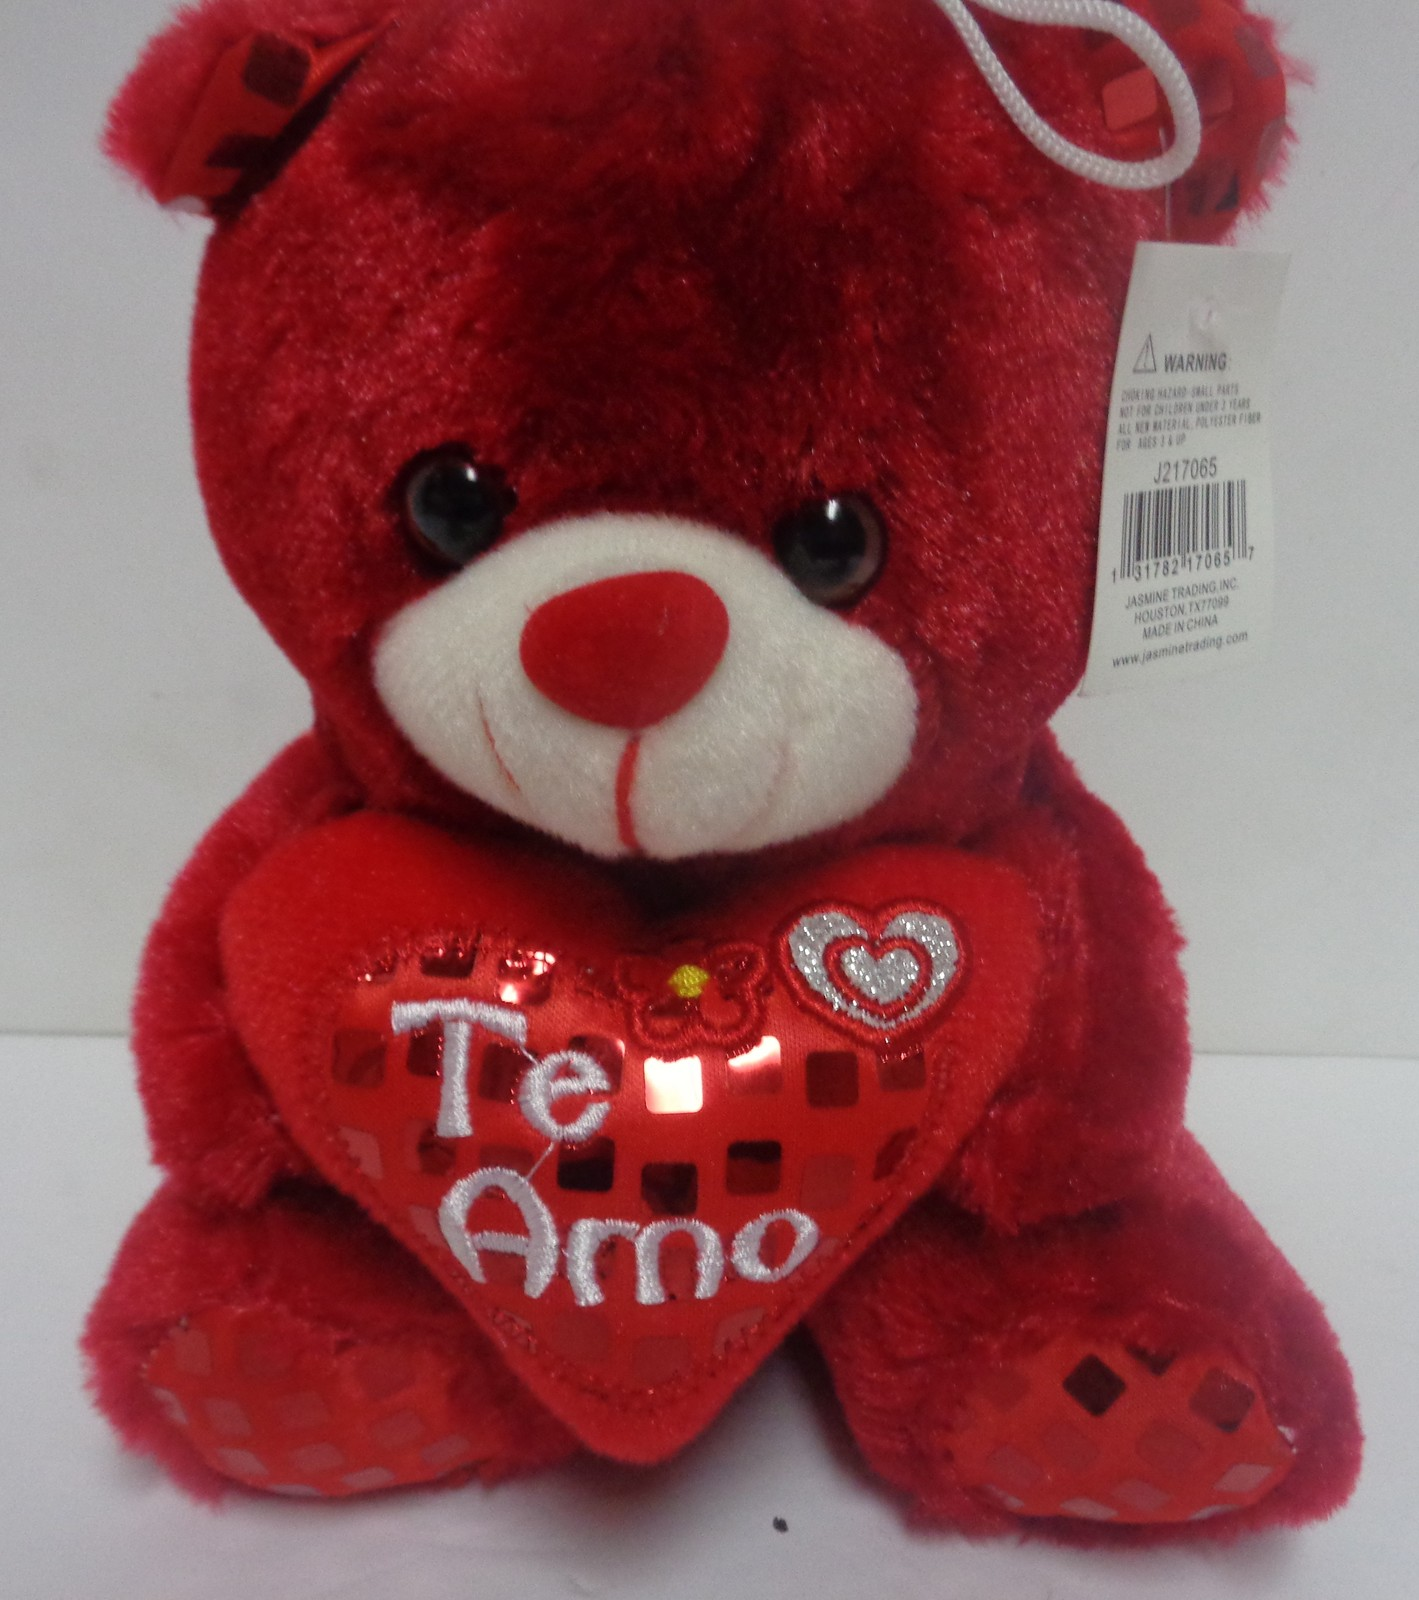 "Plush Teddy Bear NWT TE AMO Heart Emoji 8"" Love Red"